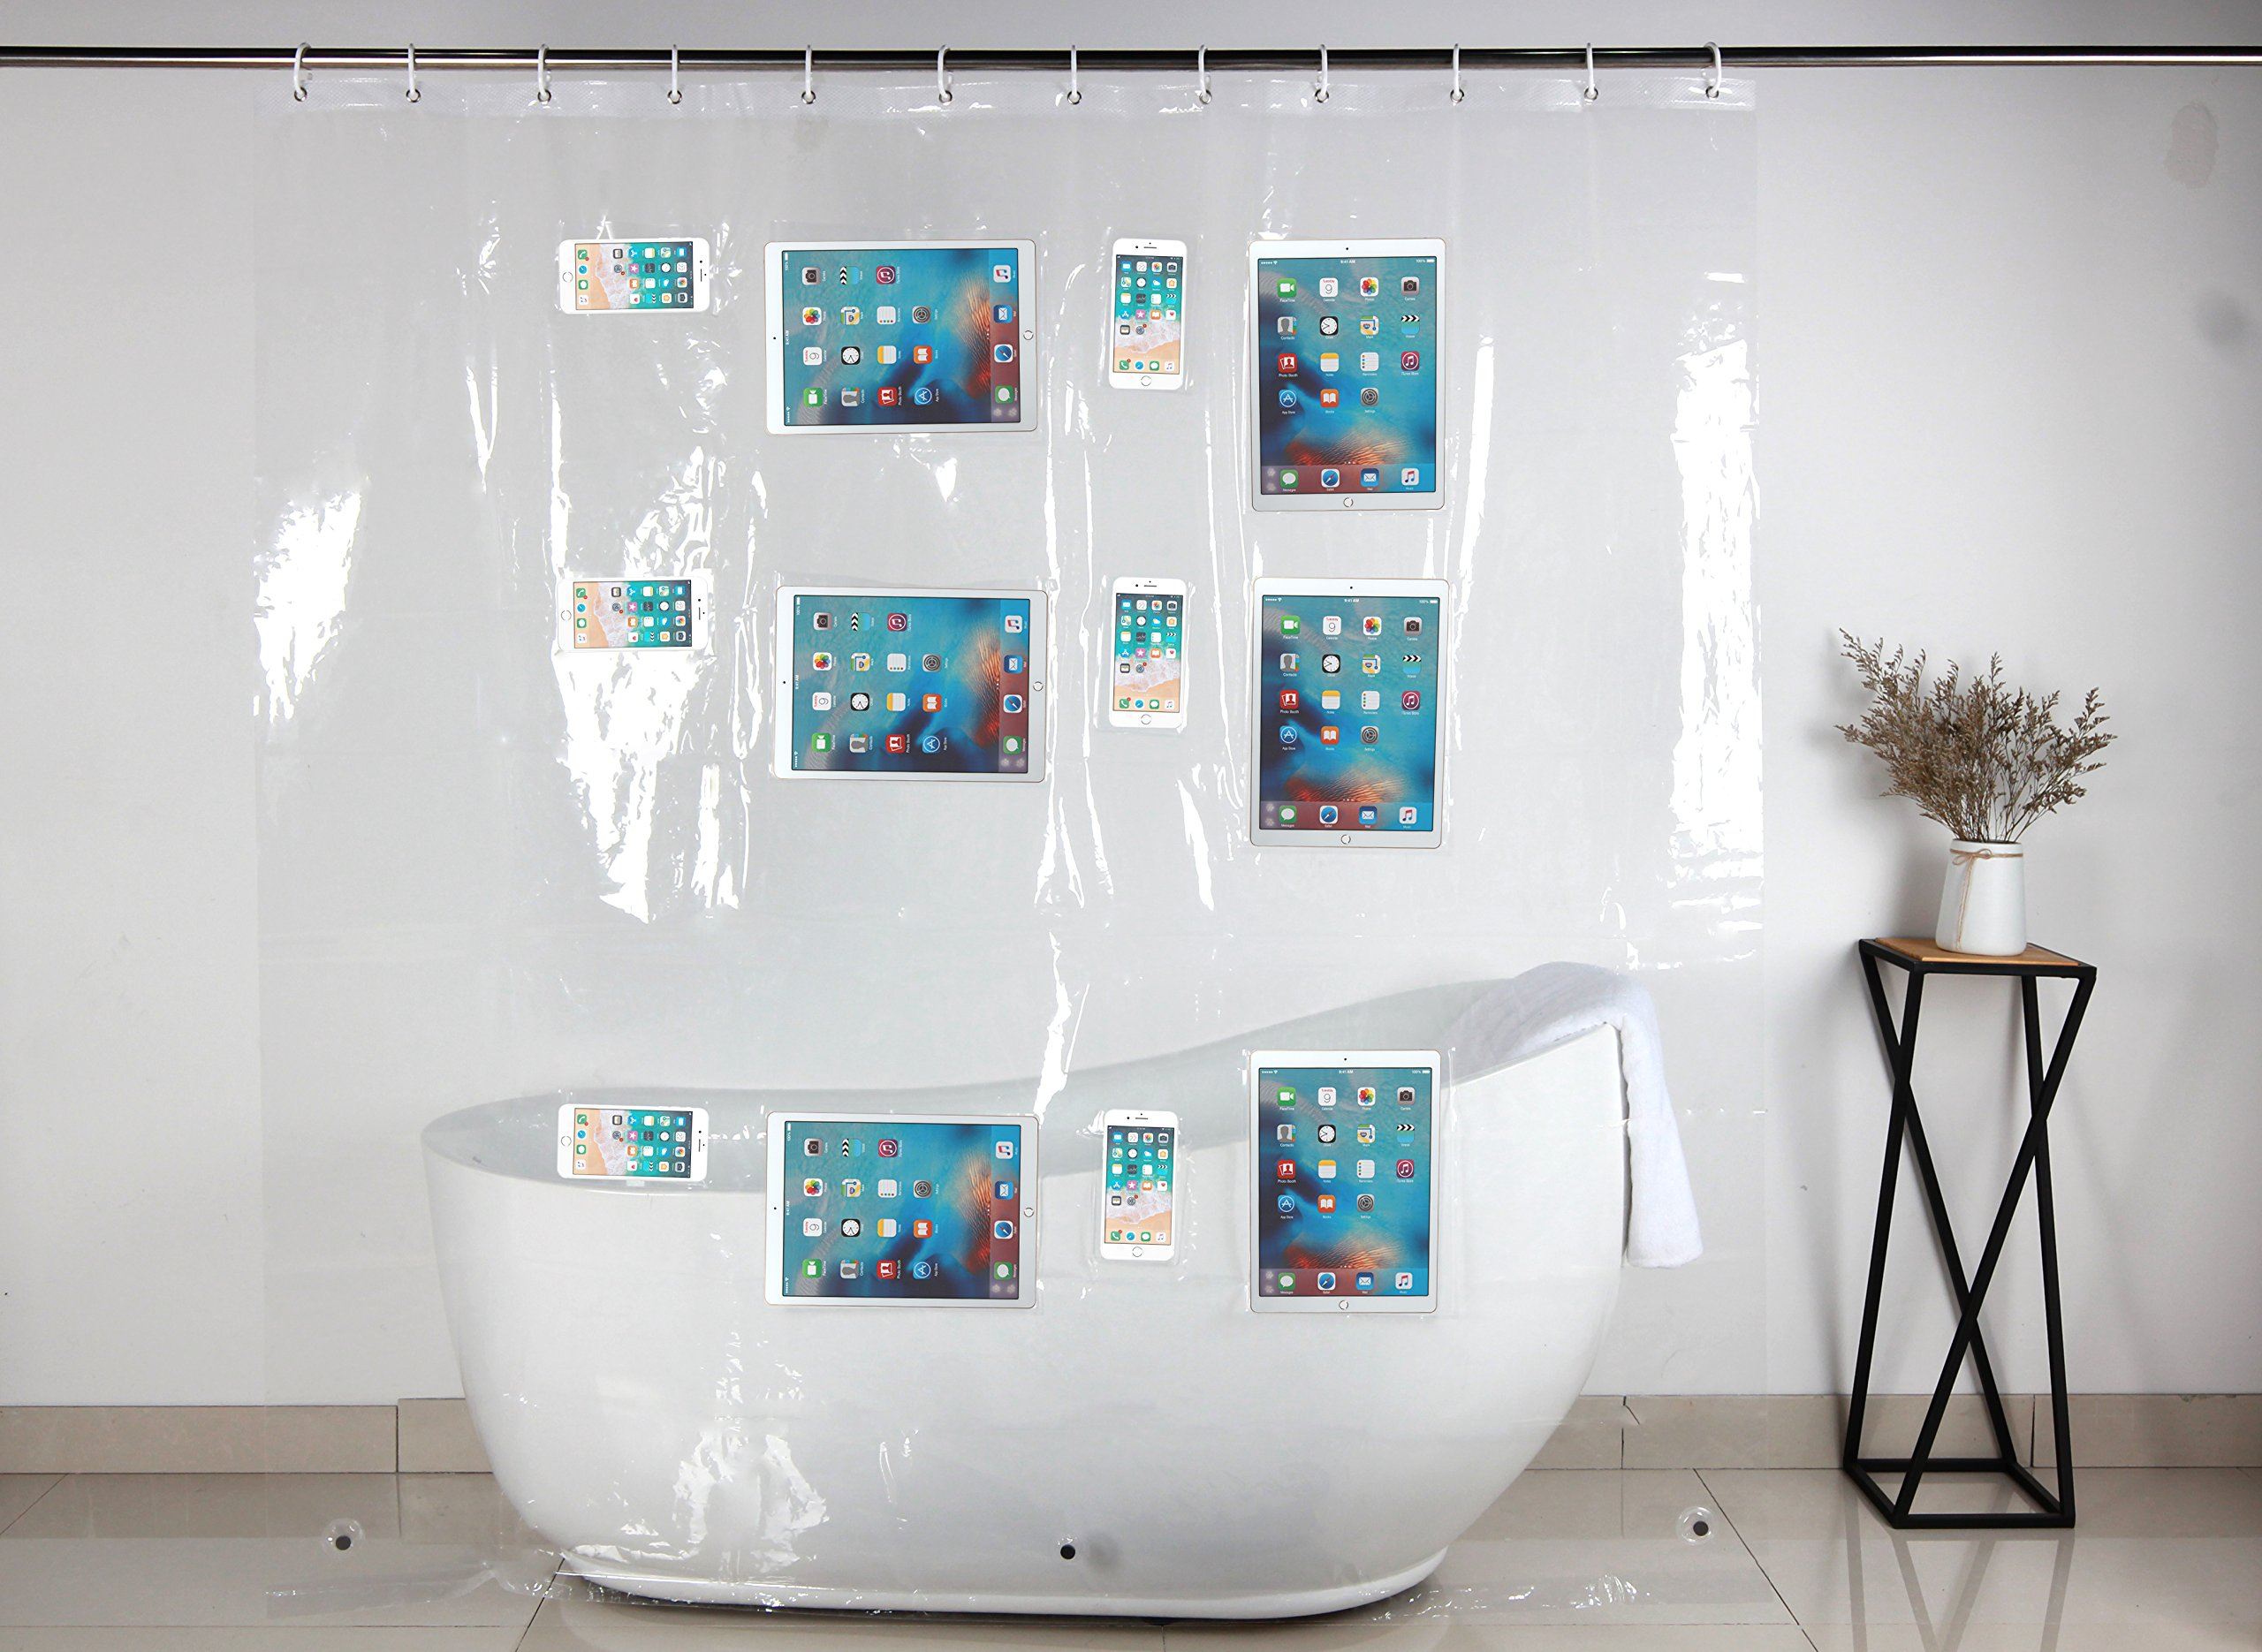 Clear Shower Curtain Liner With 12 Touch Pockets For iPad Phone Tablet Baby Monitor - Watch Movies TV Shows Netflix Youtube Play Games Music - 100% Waterproof Eco Friendly With 12 Free Curtain Rings